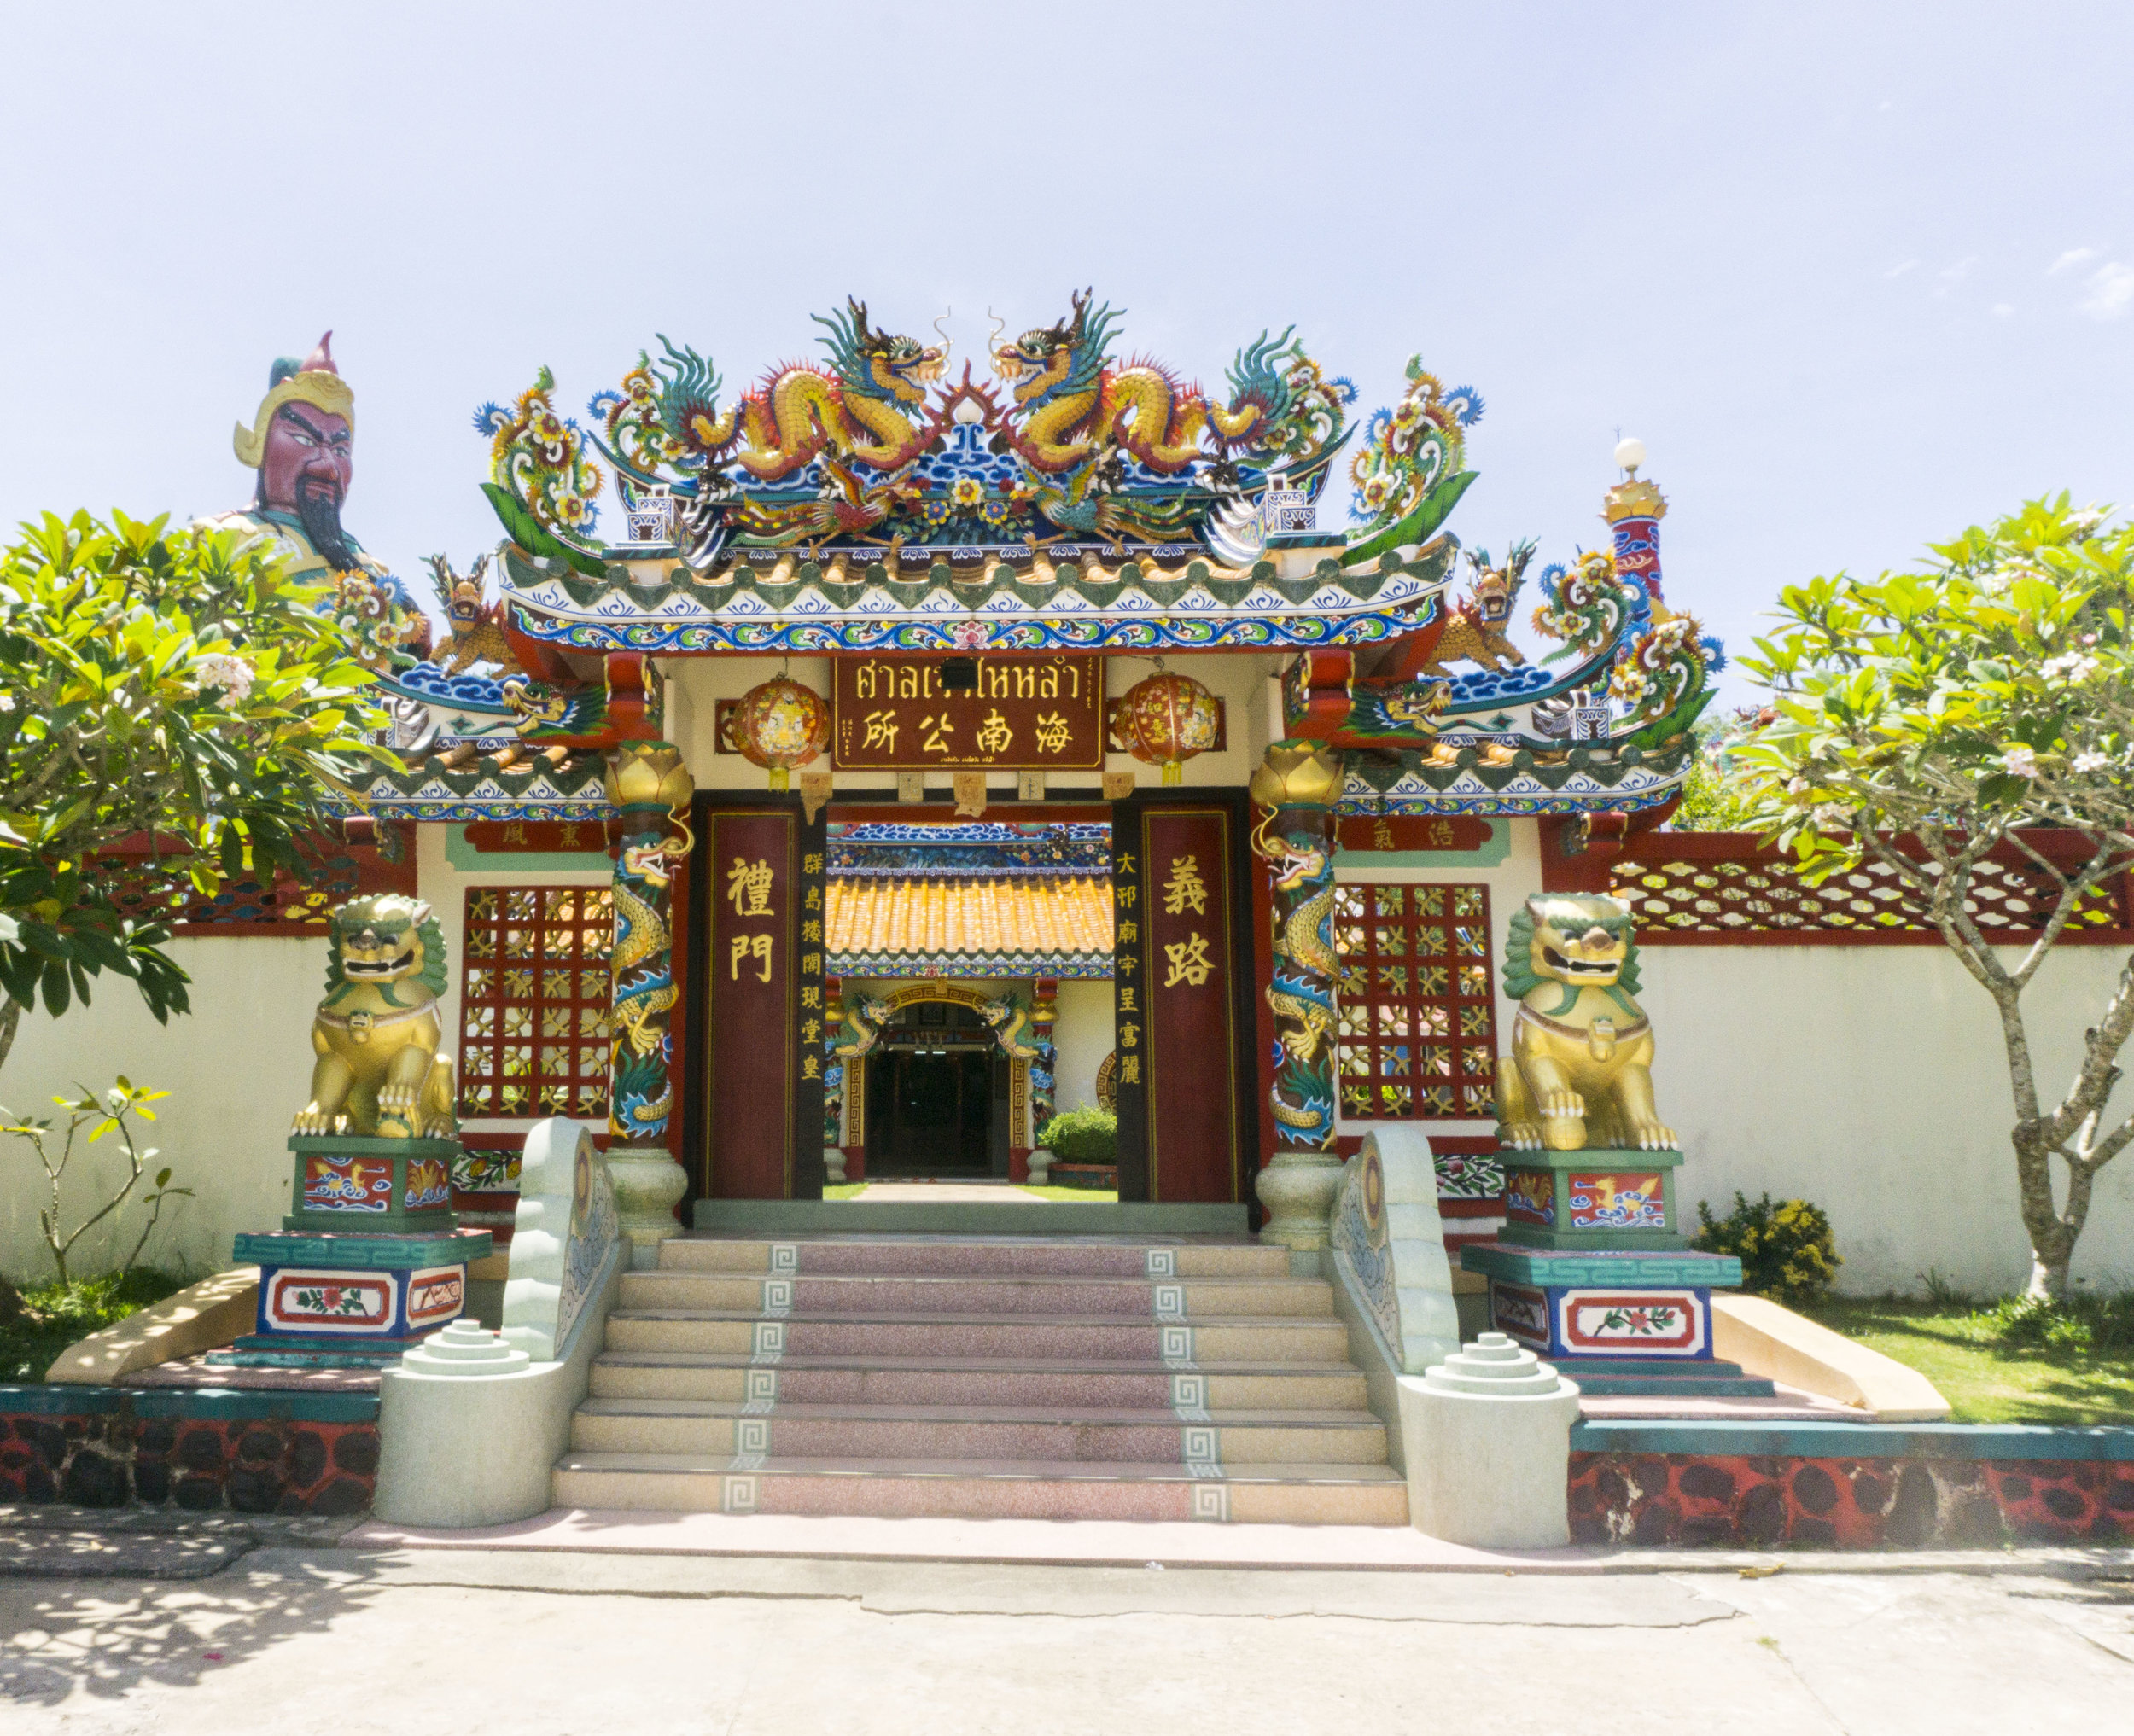 temple on koh samui travel guide thailand